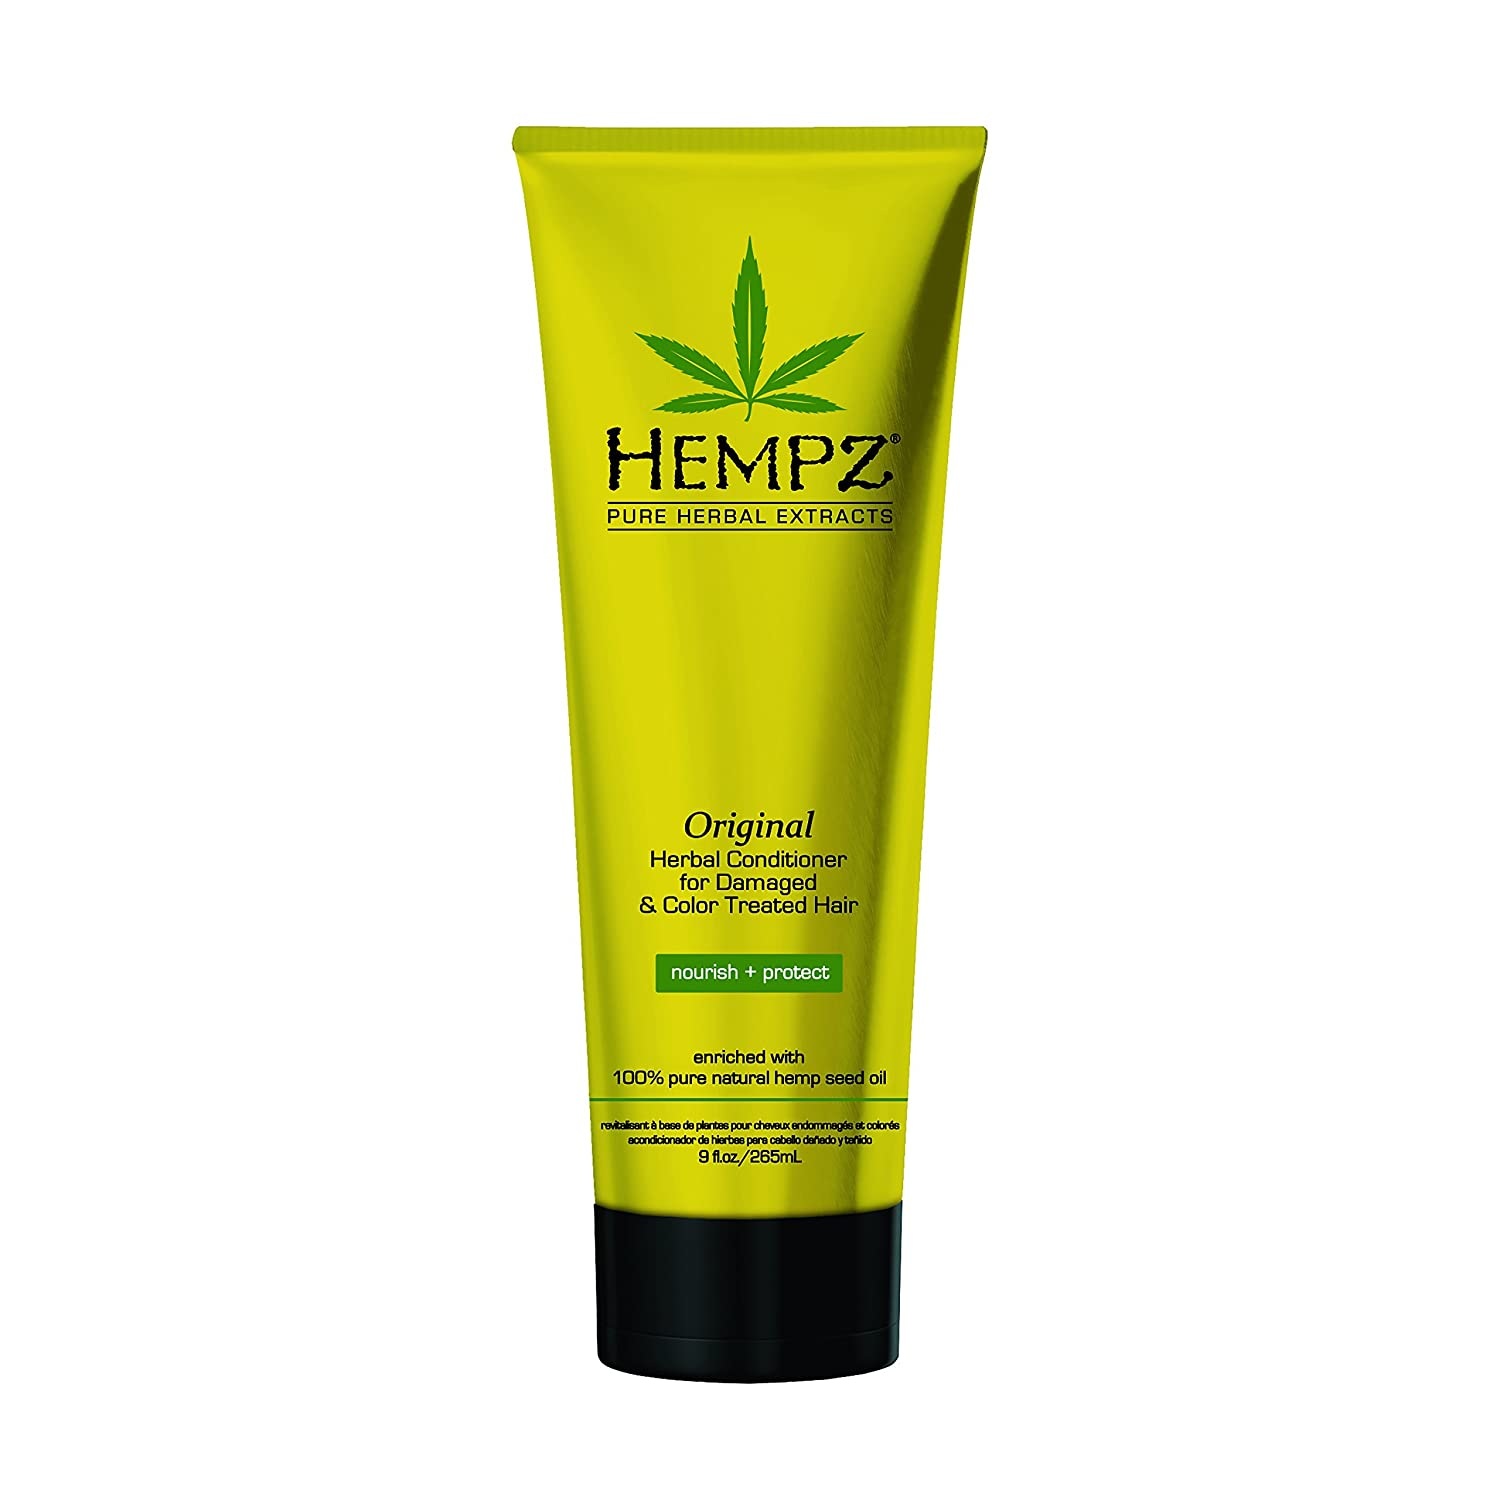 Hempz Original Herbal Conditioner for Damaged and Color Treated Hair, White, Floral/banana, 9 Fl Oz 120-2437-03